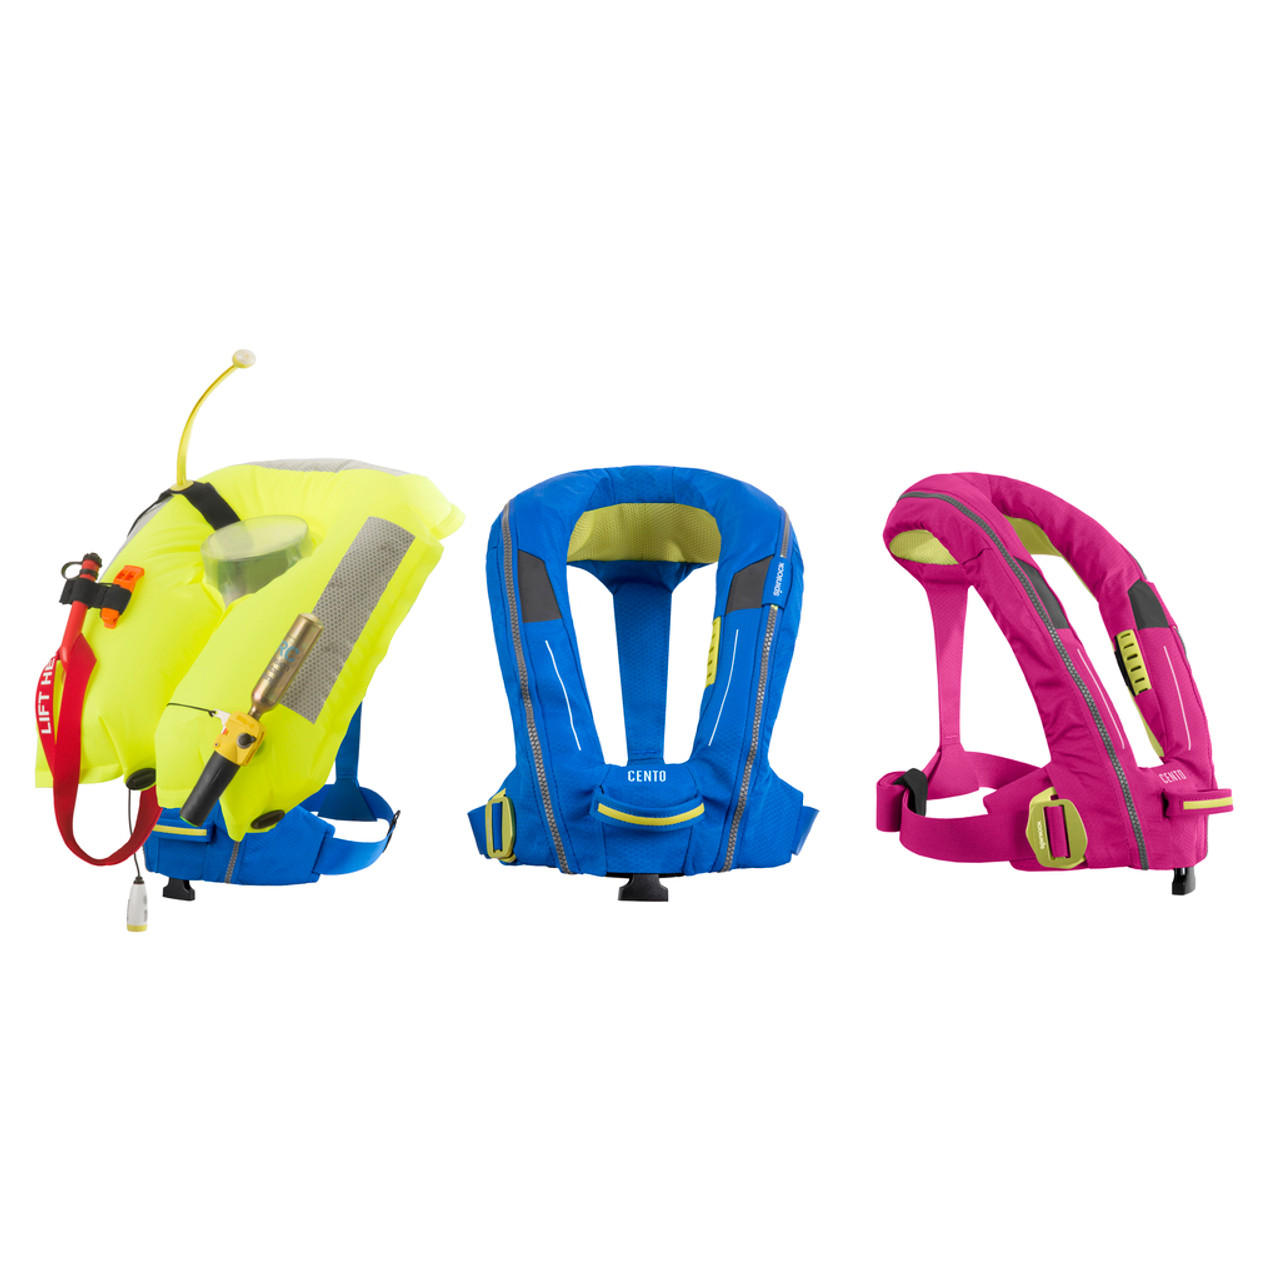 Spinlock Cento - 3 angles